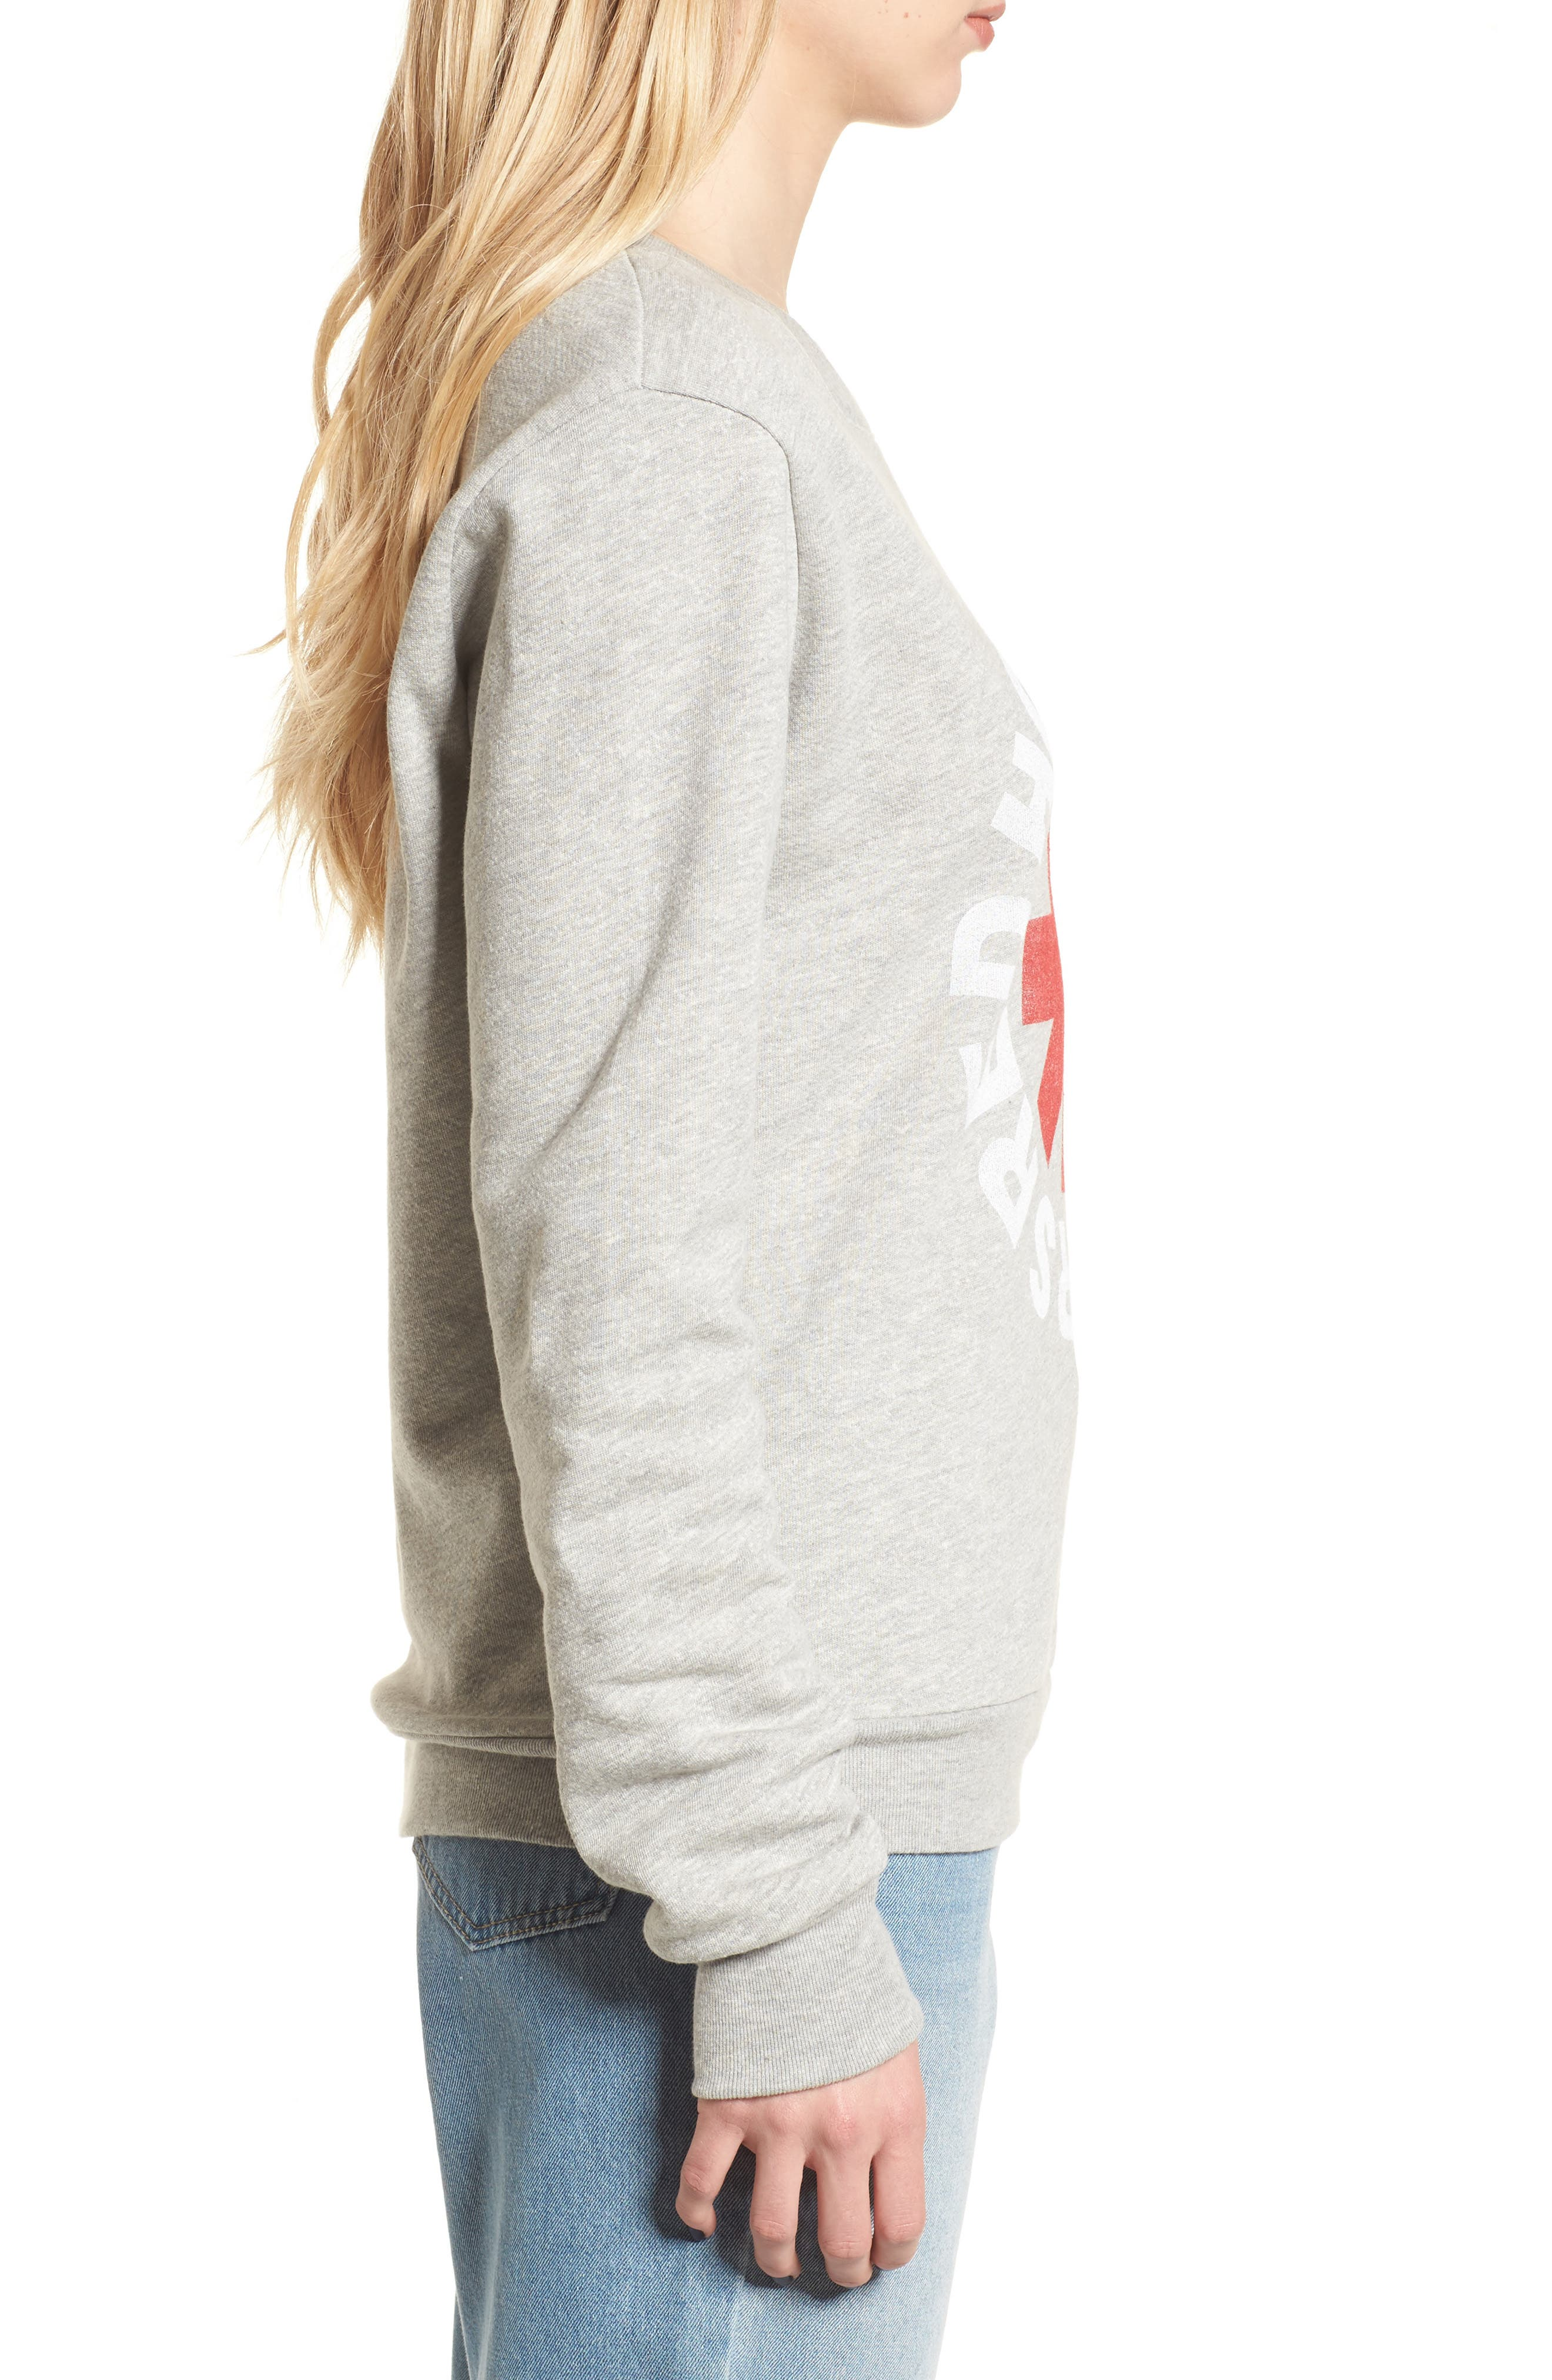 Red Hot Chili Peppers Sweatshirt,                             Alternate thumbnail 3, color,